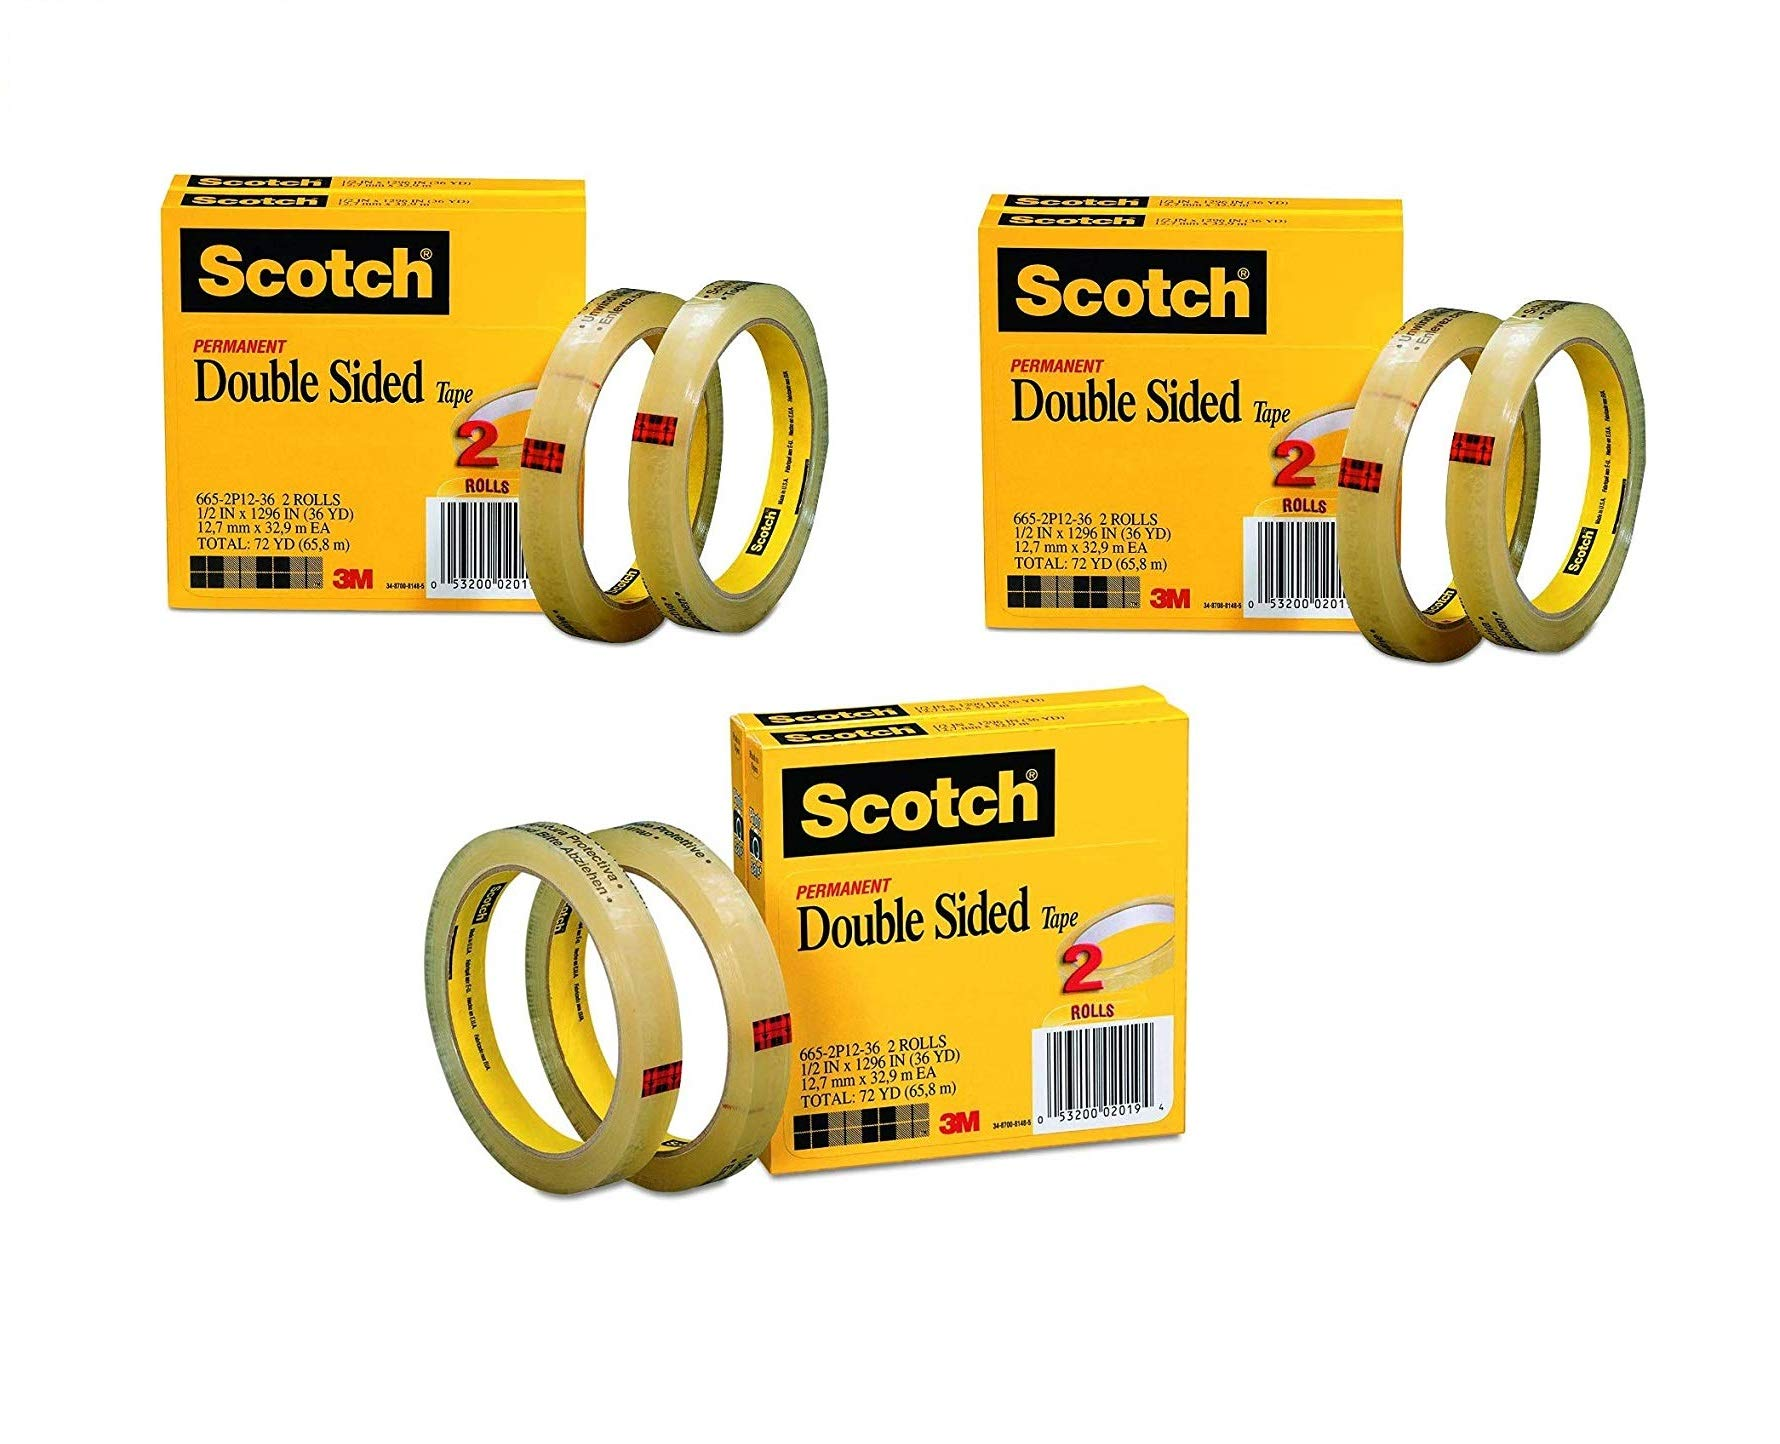 Scotch Double Sided Tape, Narrow Width, Engineered for Office and Home Use, 1/2 x 1296 Inches, 3 Inch Core, Sold as 3 Pack, 6 Rolls Total (665-2P12-36) by Scotch Brand